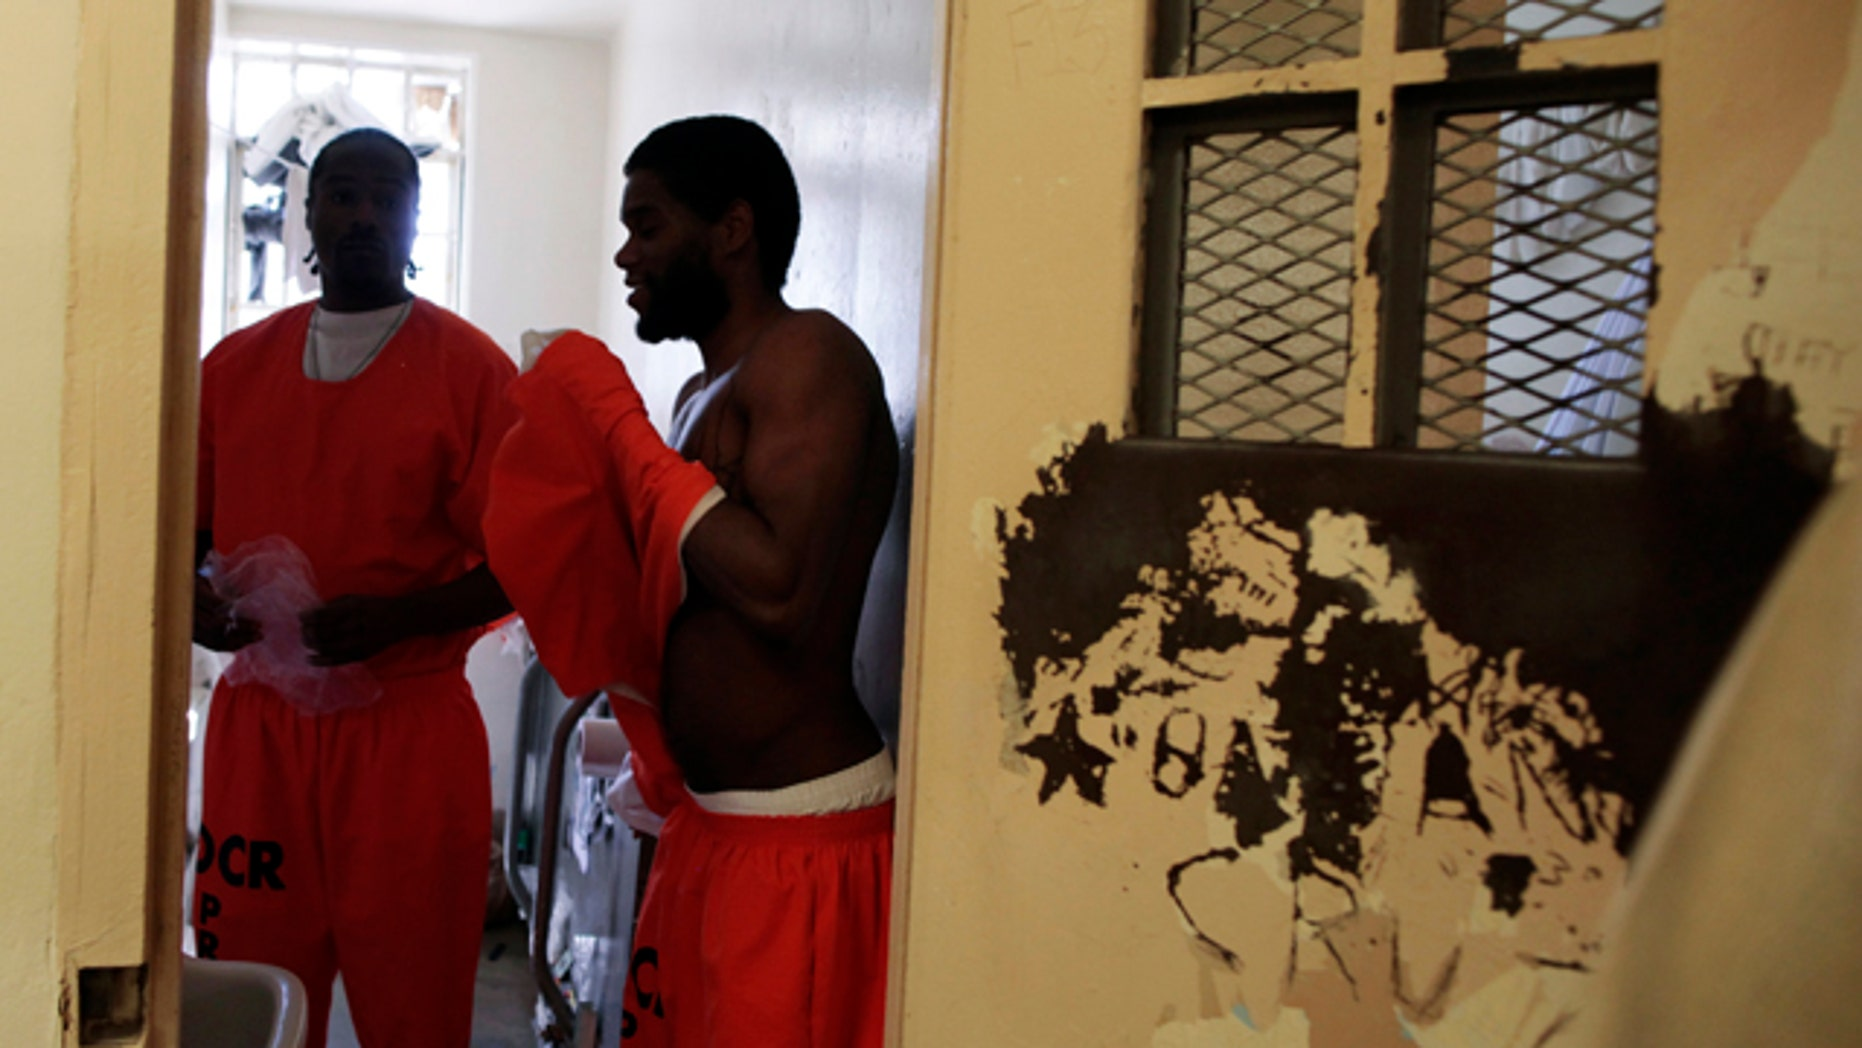 """Inmates Anthony Turner, 46, (L) who said he is serving 25 years to life for a three strikes offense, and Daniel King, 23 stand in their cell at the California Institution for Men state prison in Chino, California, June 3, 2011. The Supreme Court has ordered California to release more than 30,000 inmates over the next two years or take other steps to ease overcrowding in its prisons to prevent """"needless suffering and death."""" California's 33 adult prisons were designed to hold about 80,000 inmates and now have about 145,000. The U.S. has more than 2 million people in state and local prisons. It has long had the highest incarceration rate in the world."""